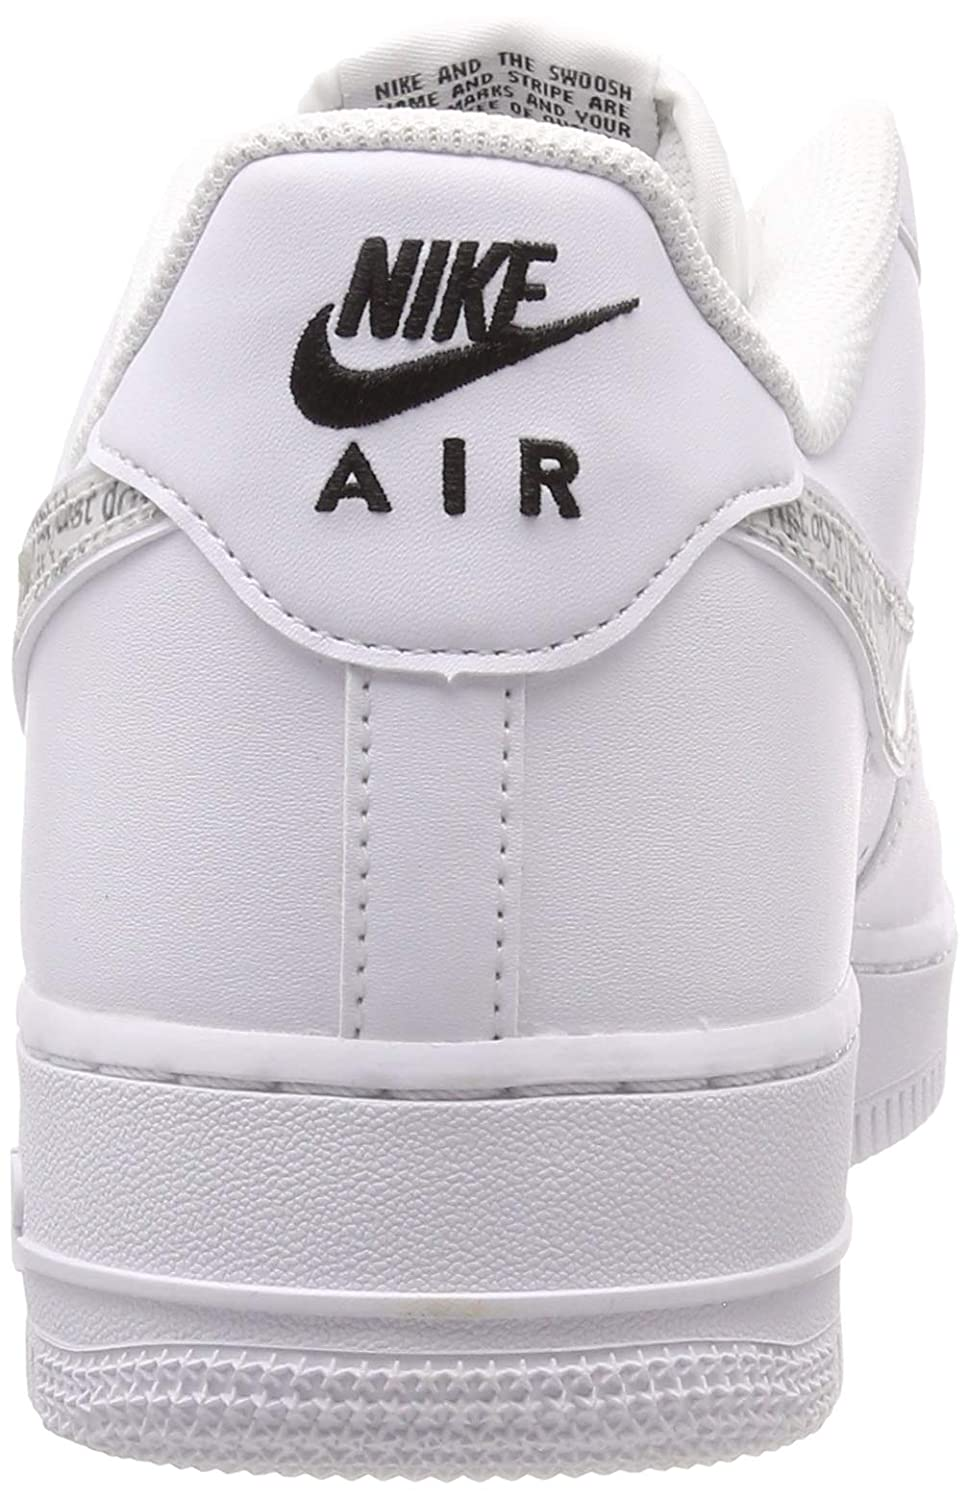 san francisco 10294 c767c Nike Air Force 1 '07 Lv8 JDI Lntc, Sneakers Basses Homme: Amazon.fr:  Chaussures et Sacs